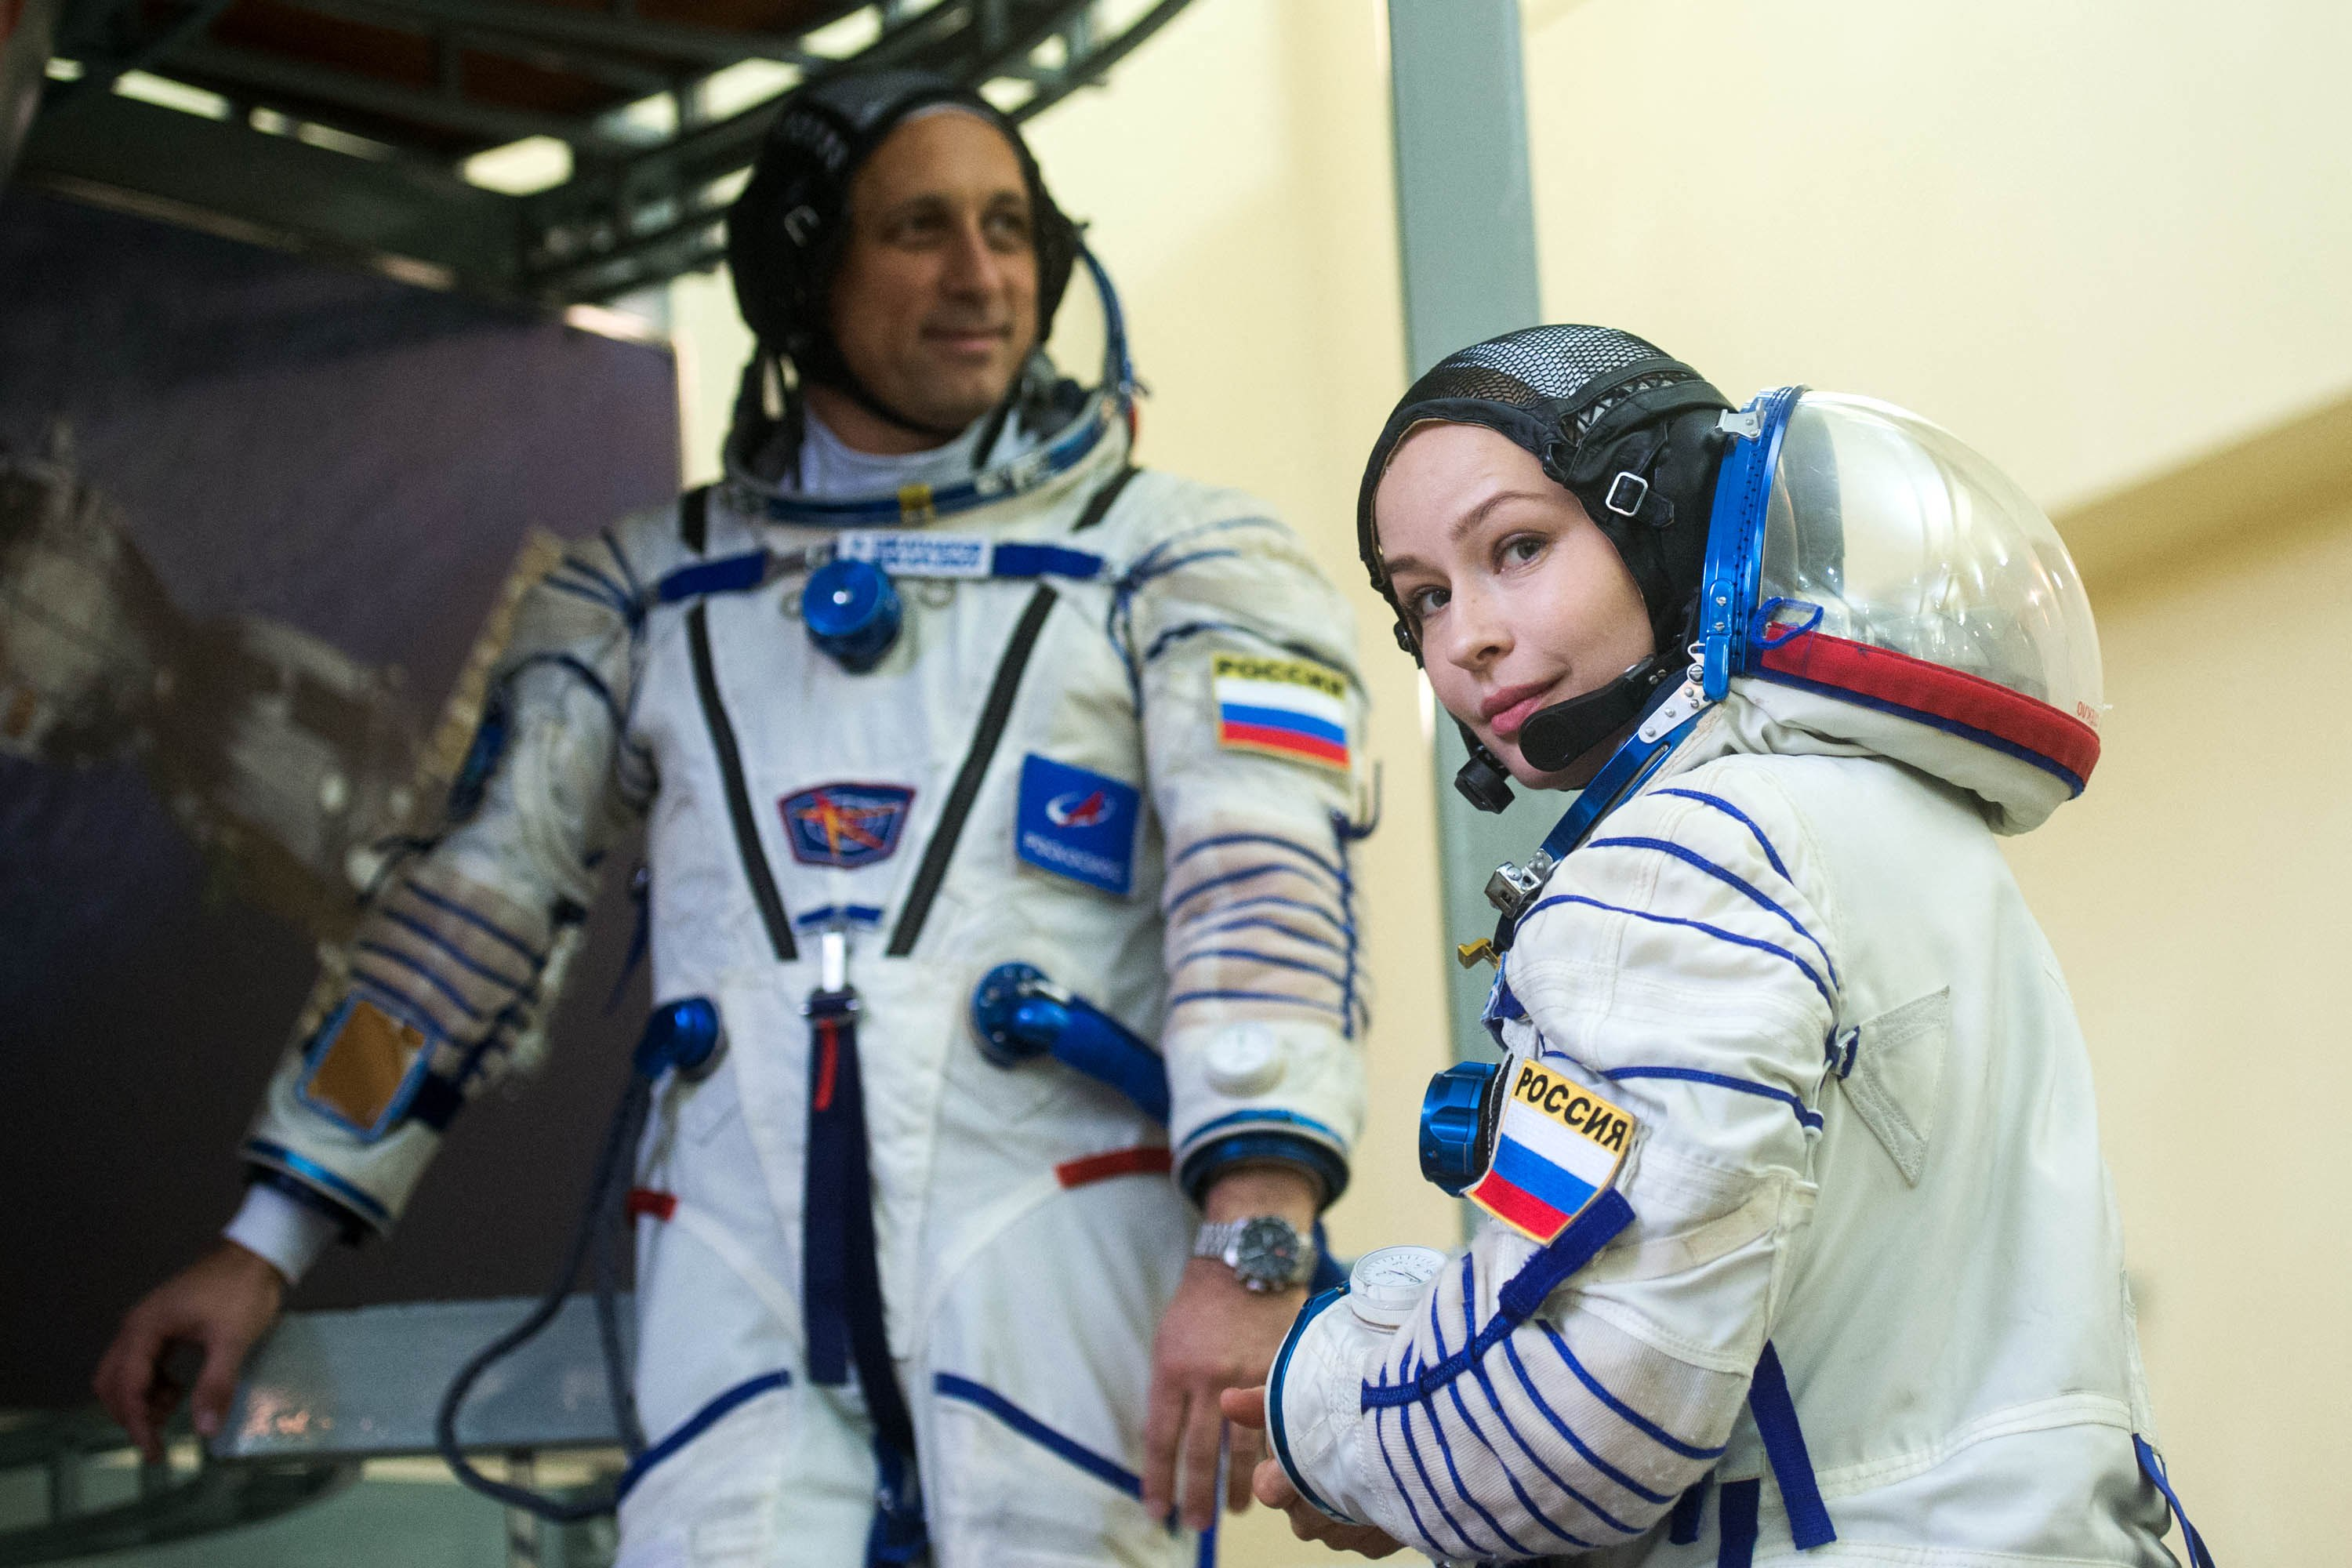 Actress Yulia Peresild attends a spaceflight training earlier this month at the Gagarin Cosmonaut Training Center in Star City, outside Moscow.